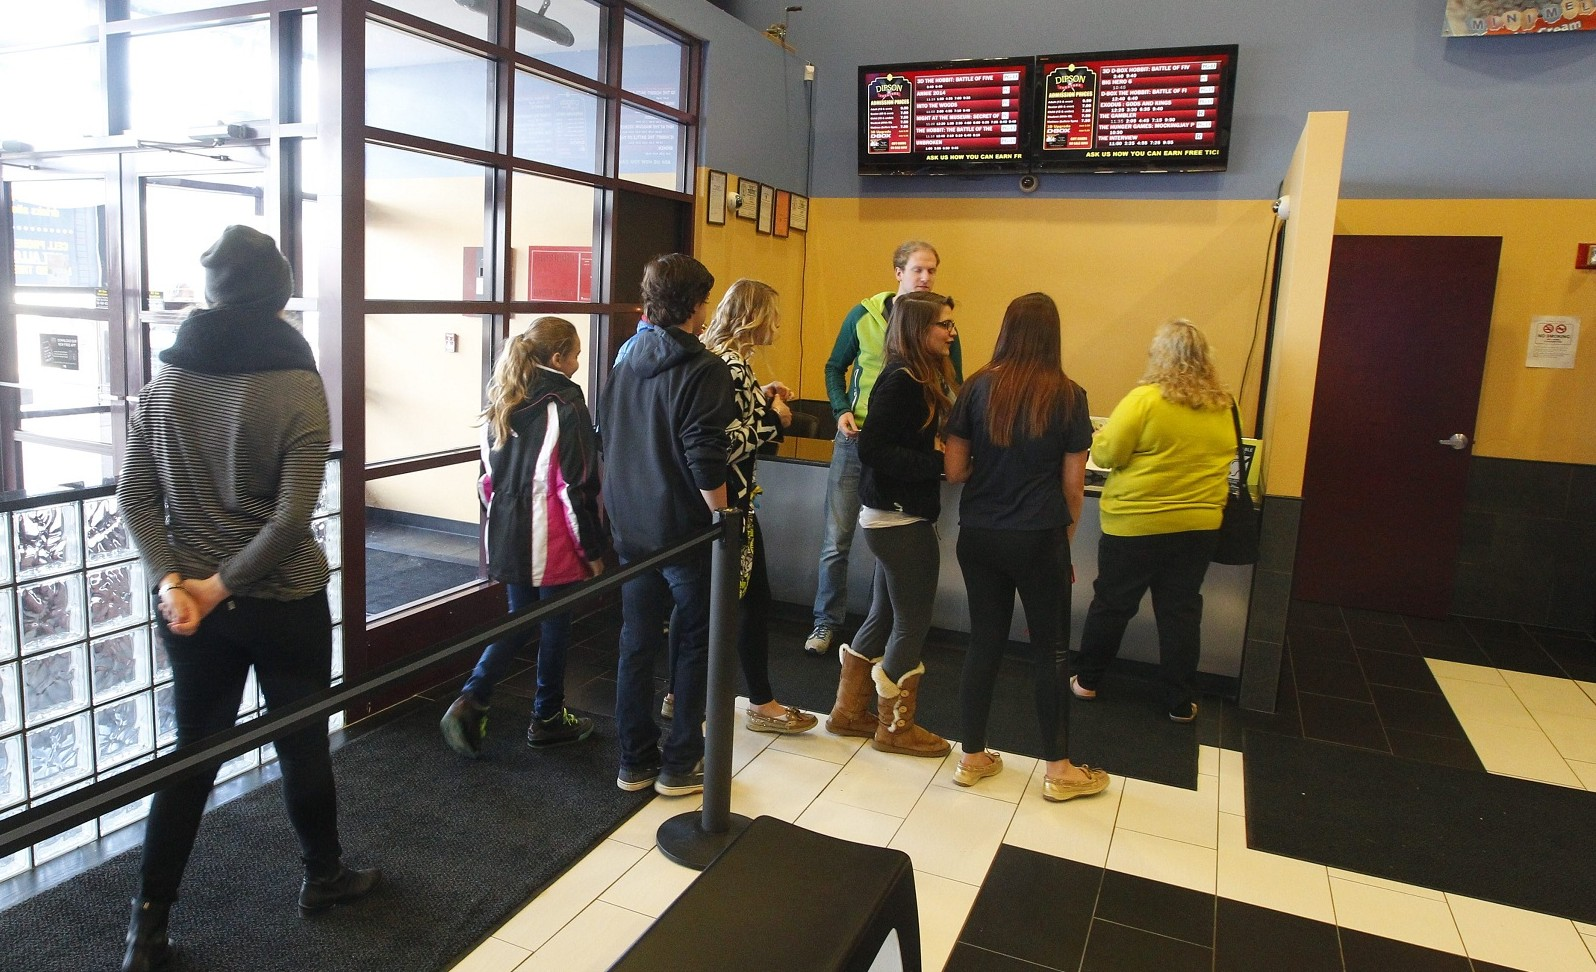 """Patrons arrive at the Lancaster Dipson Flix Theatre for the first showing locally of """"The Interview."""" (John Hickey/Buffalo News)"""